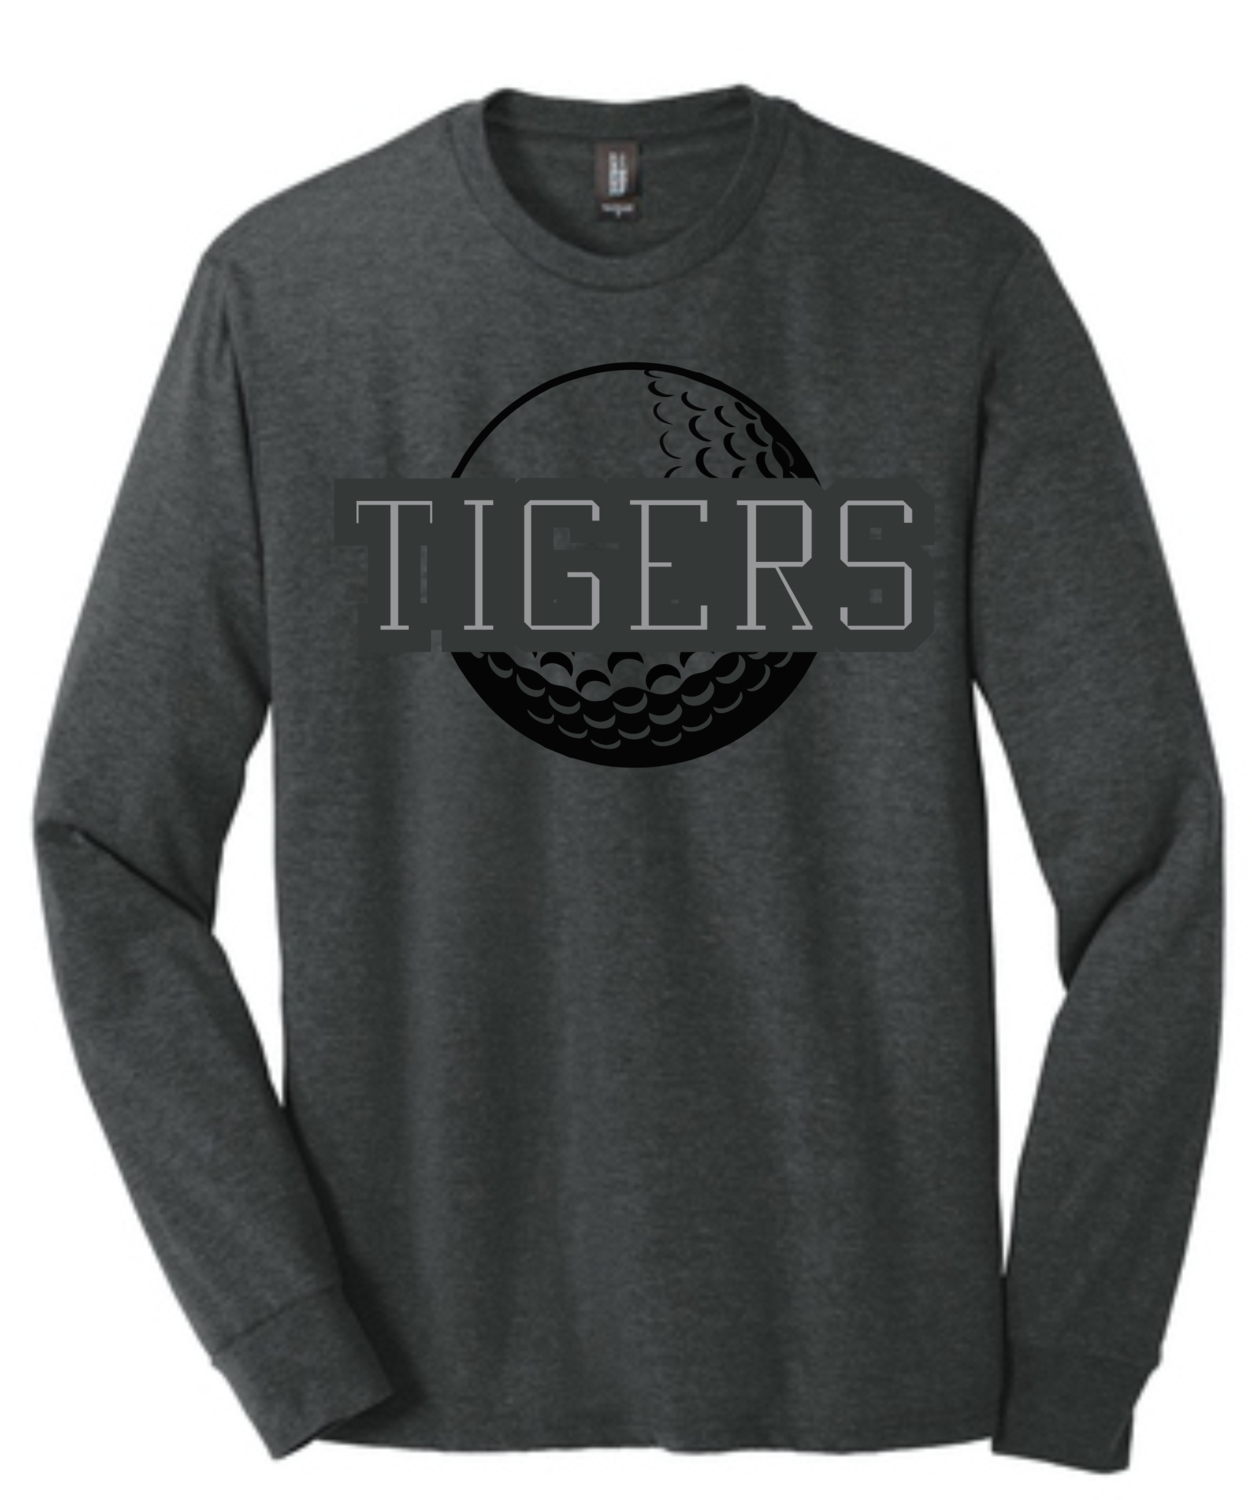 DM132 - District ® Perfect Tri ® Long Sleeve Tee